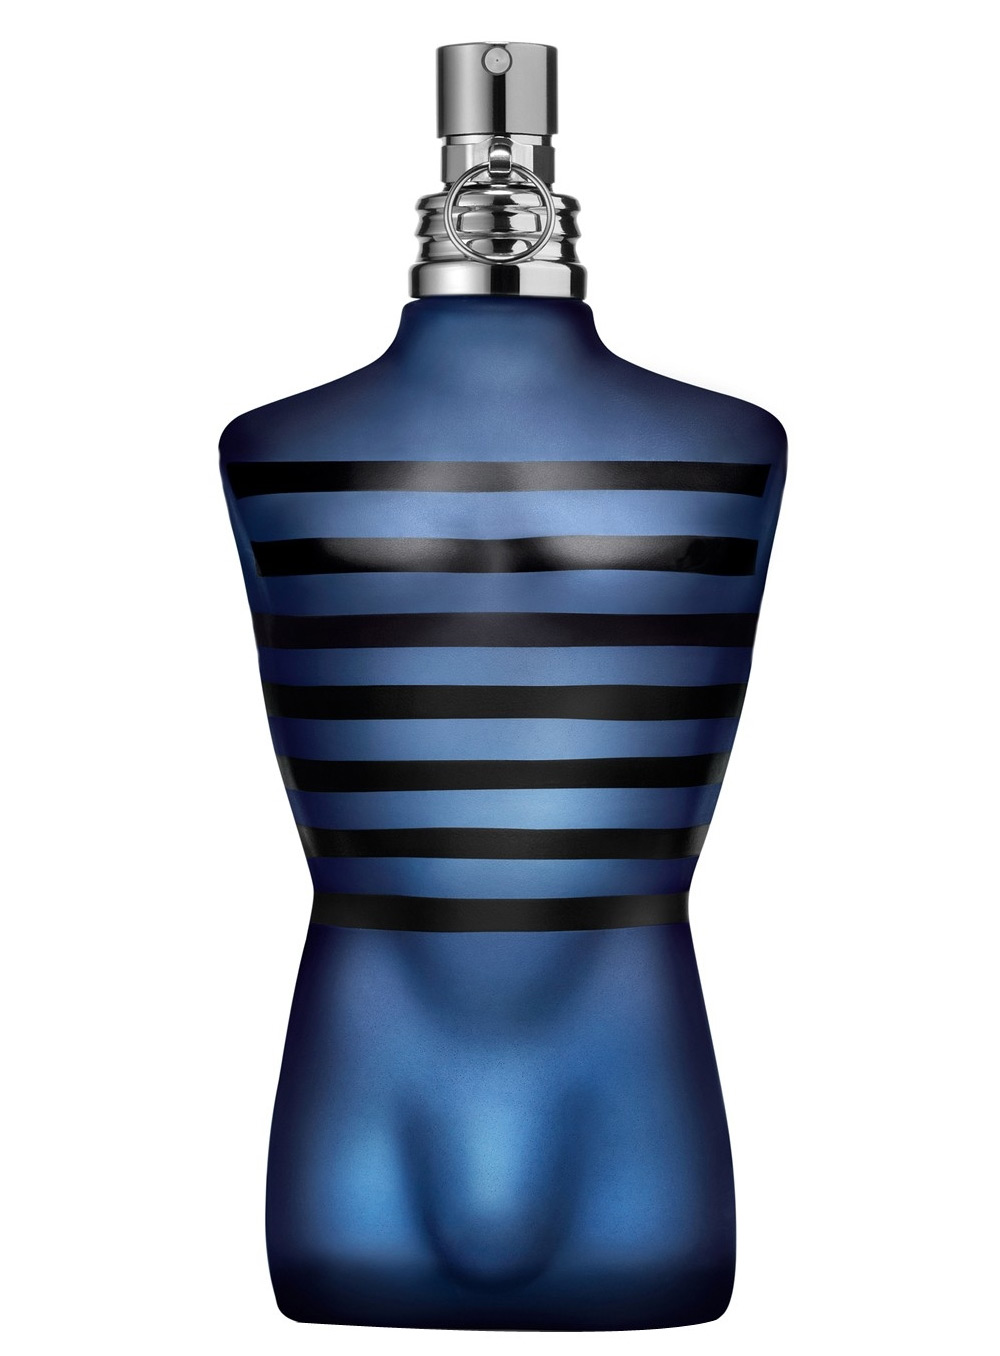 Ultra Male Jean Paul Gaultier cologne - a new fragrance ...